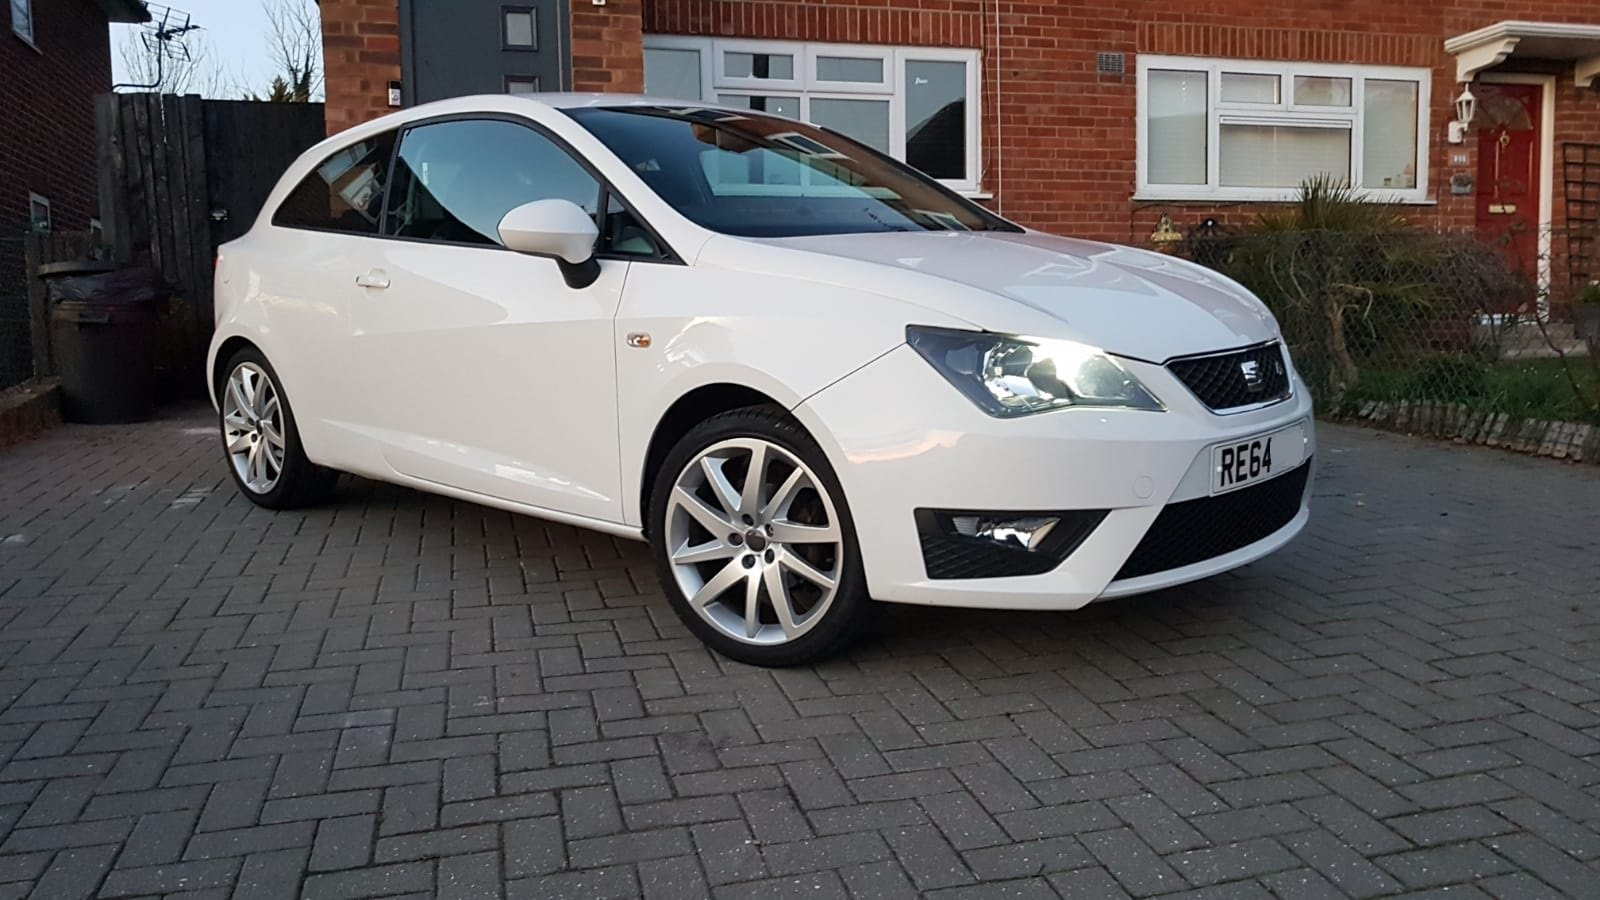 2014 seat ibiza 1.2 tsi fr i-tech 3dr hatchback For Sale (picture 2 of 6)